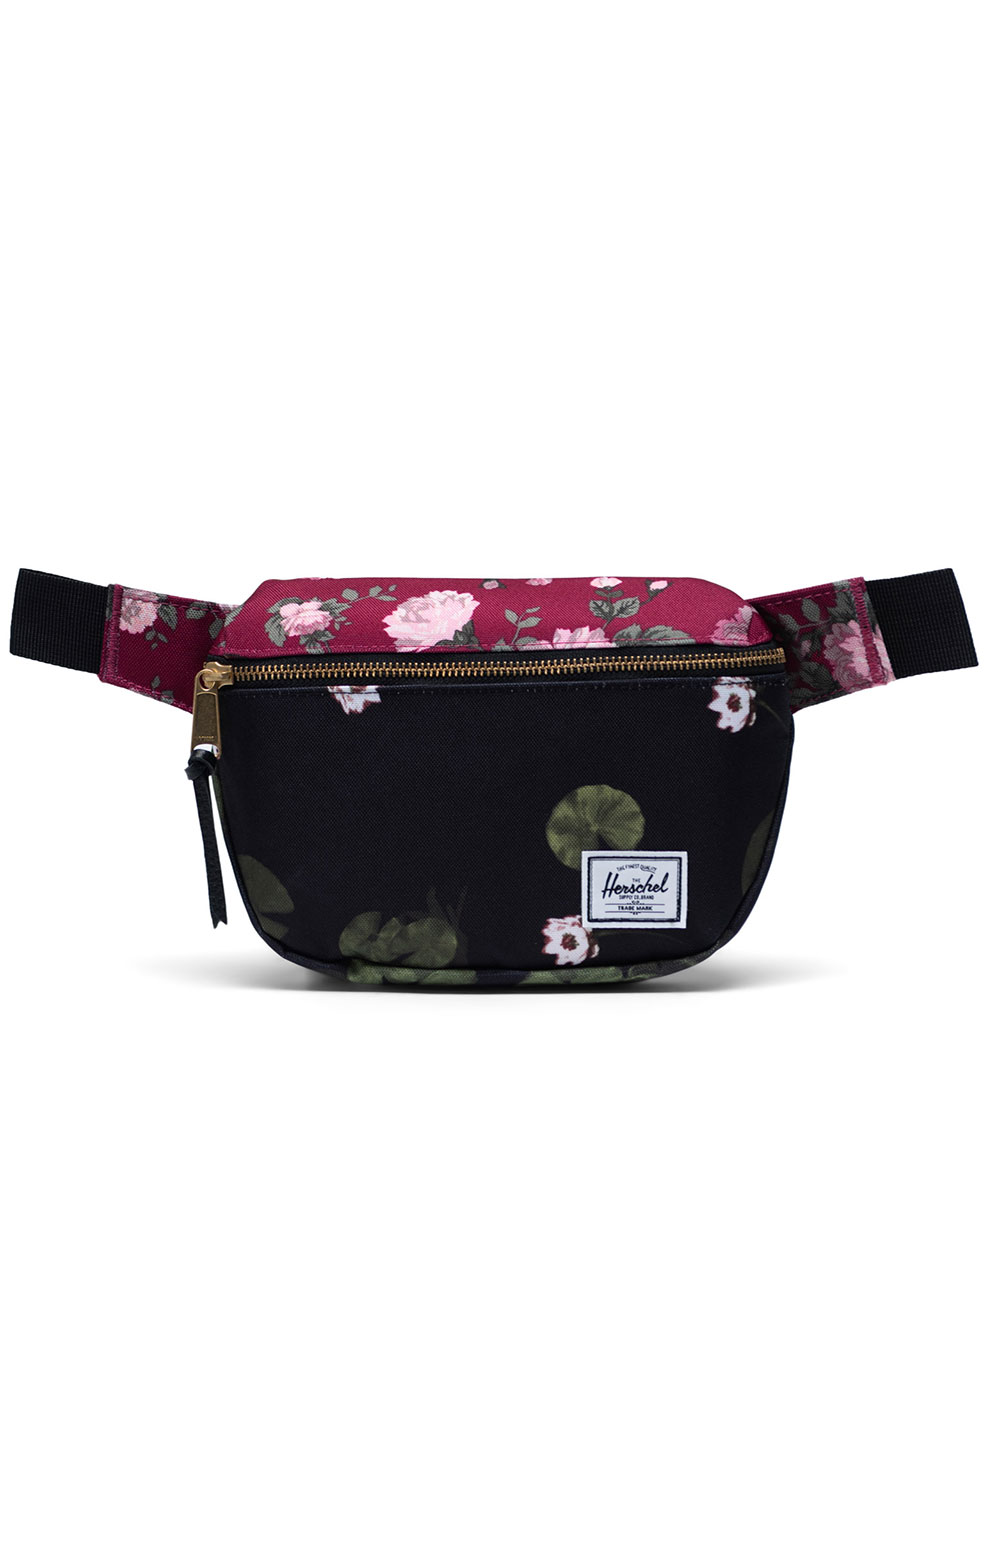 Fifteen Hip Pack - Fine China Floral  2